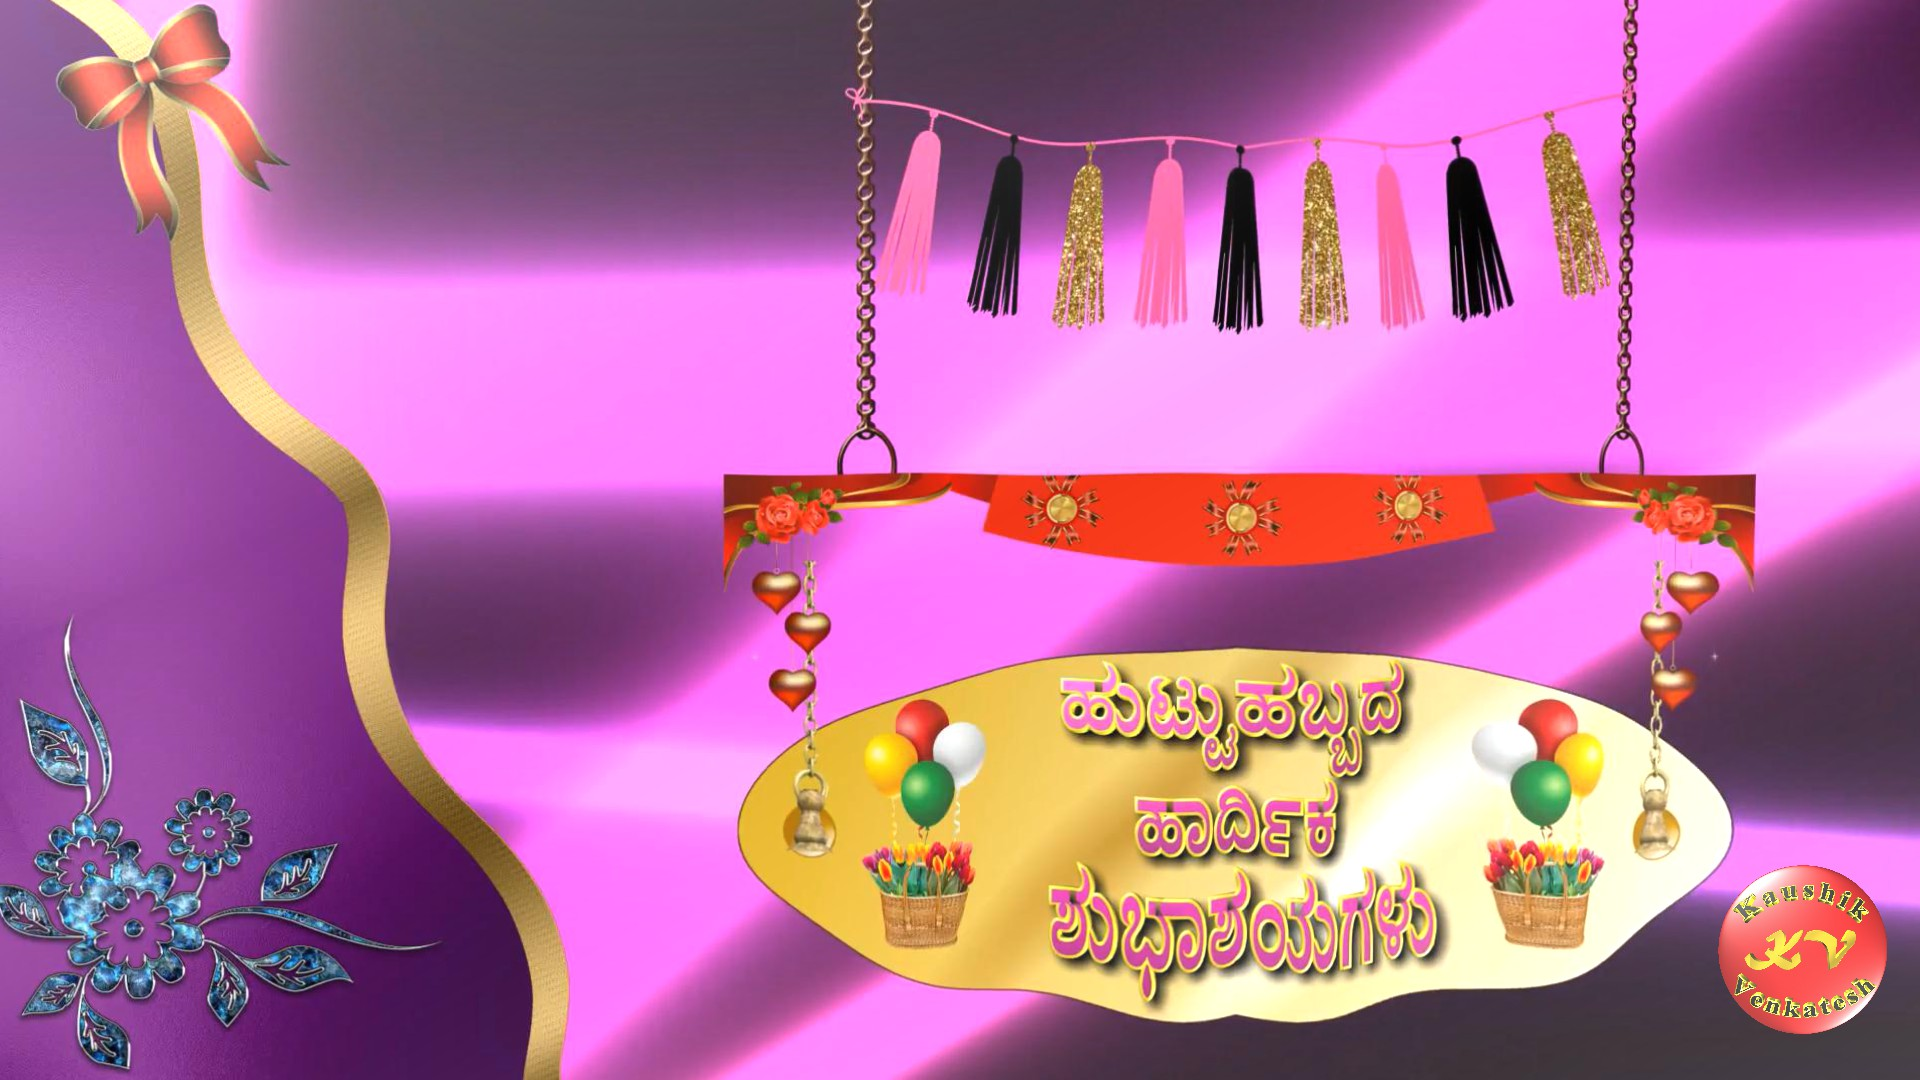 Greetings for Happy Birthday in Kannada font